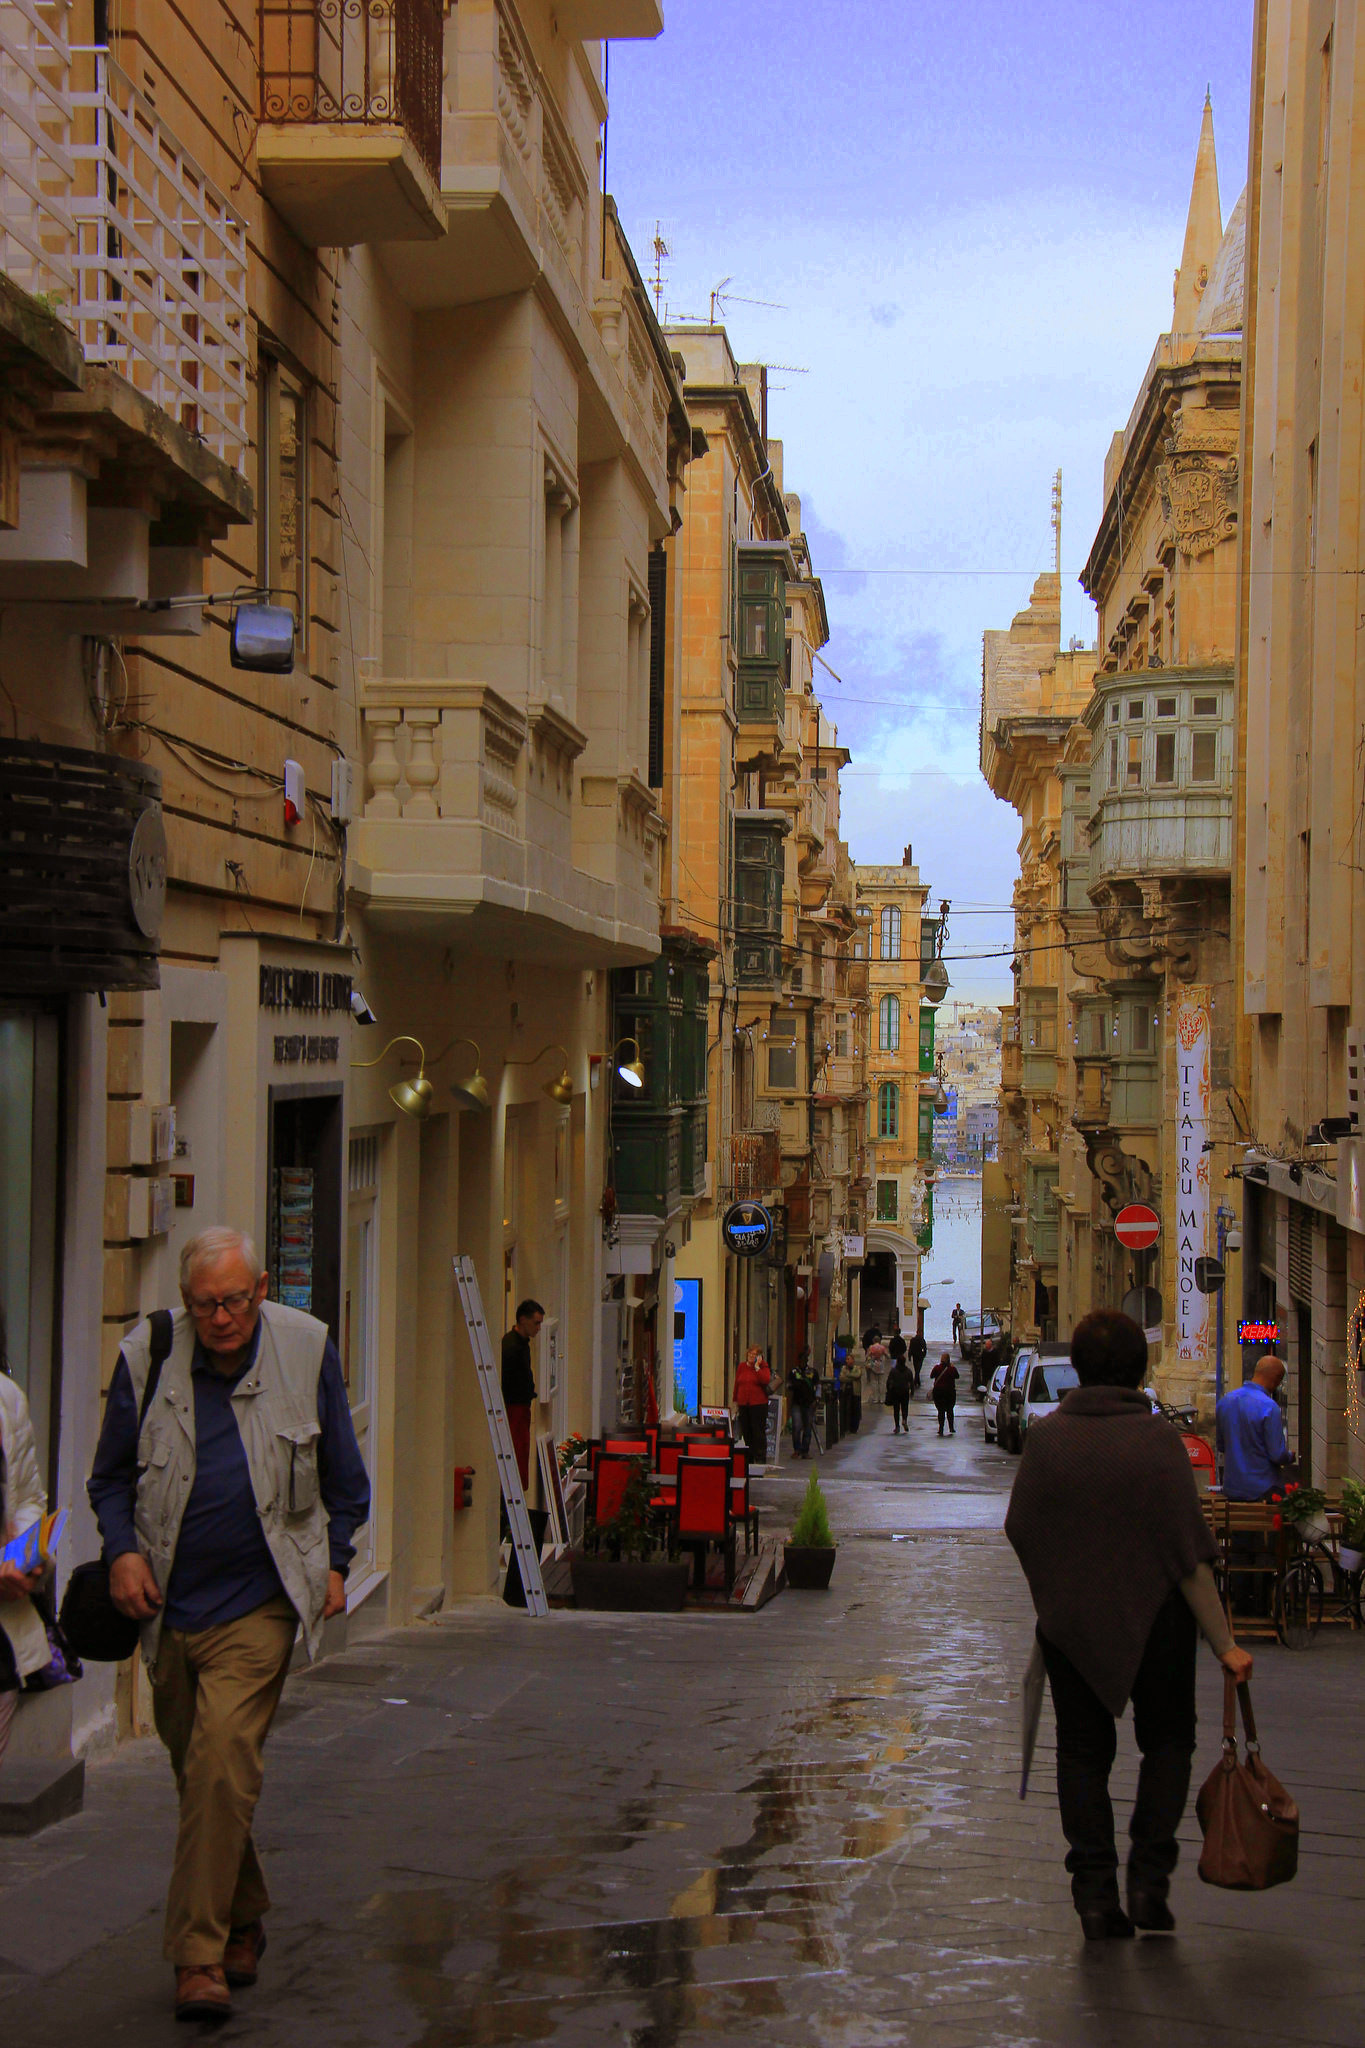 Valletta has a city full of baroque buildings